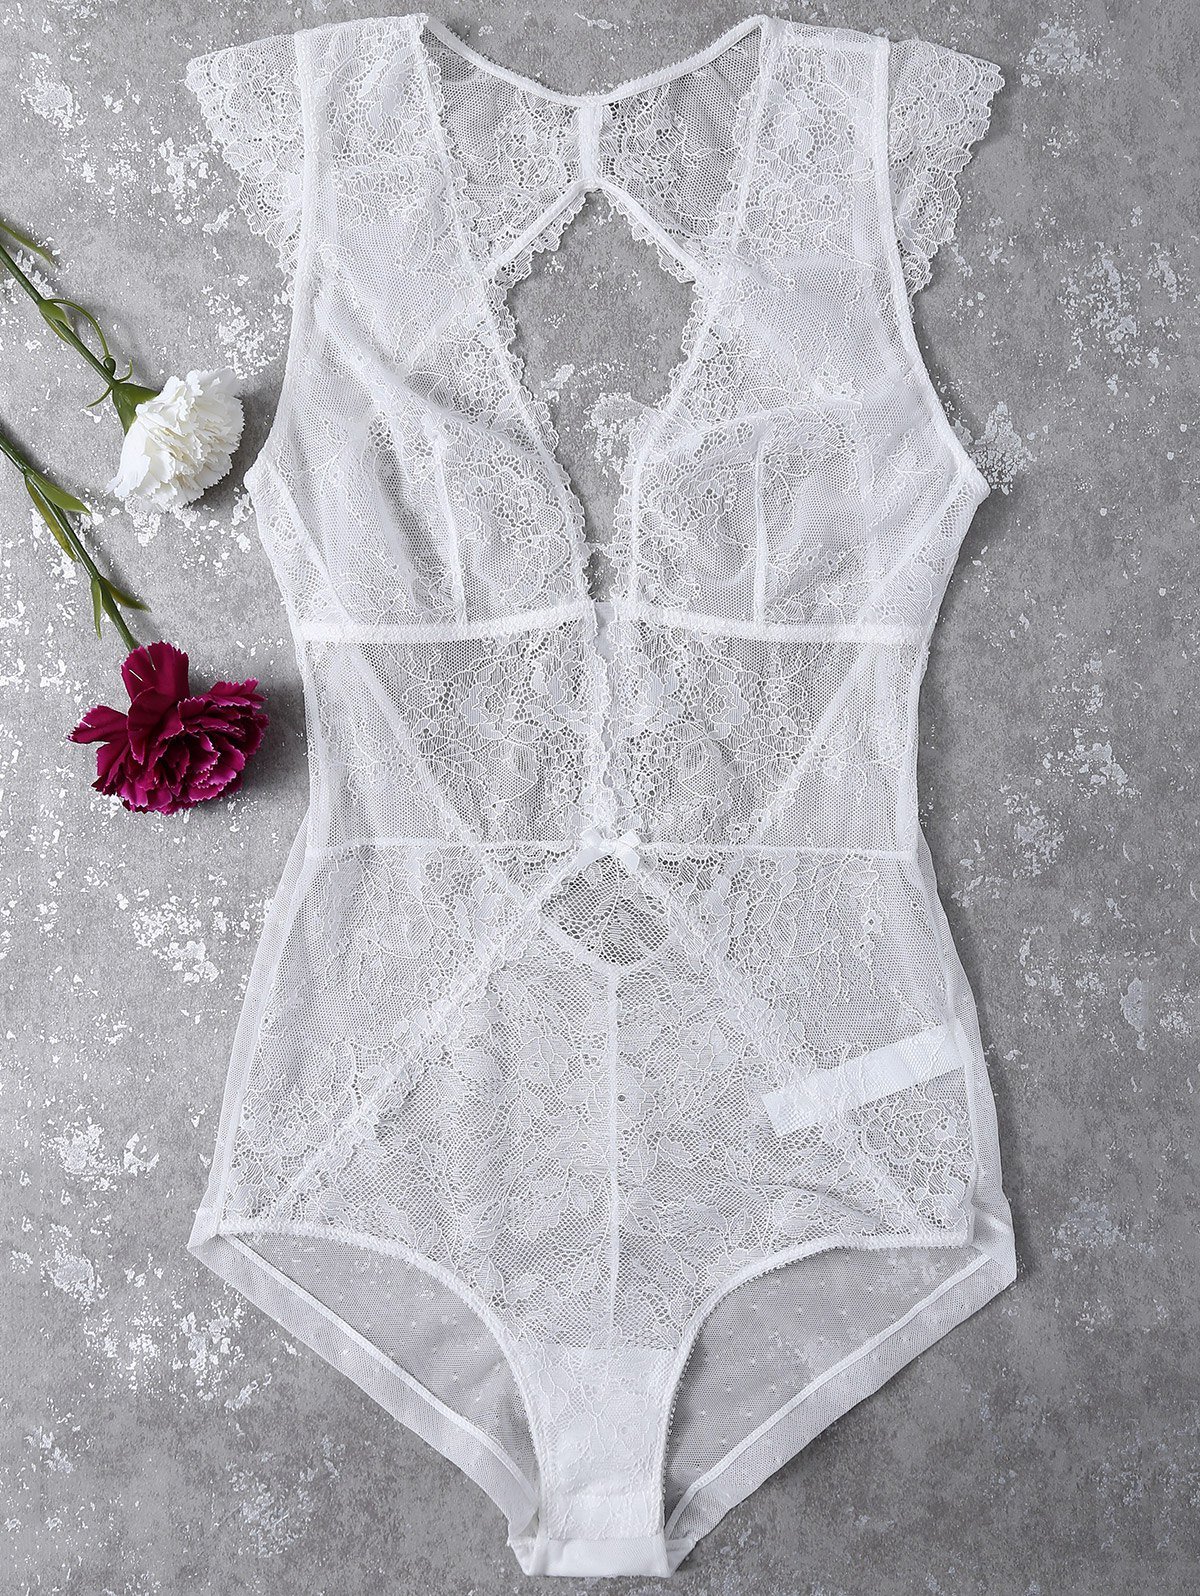 Plunge See-Through Lace Teddies